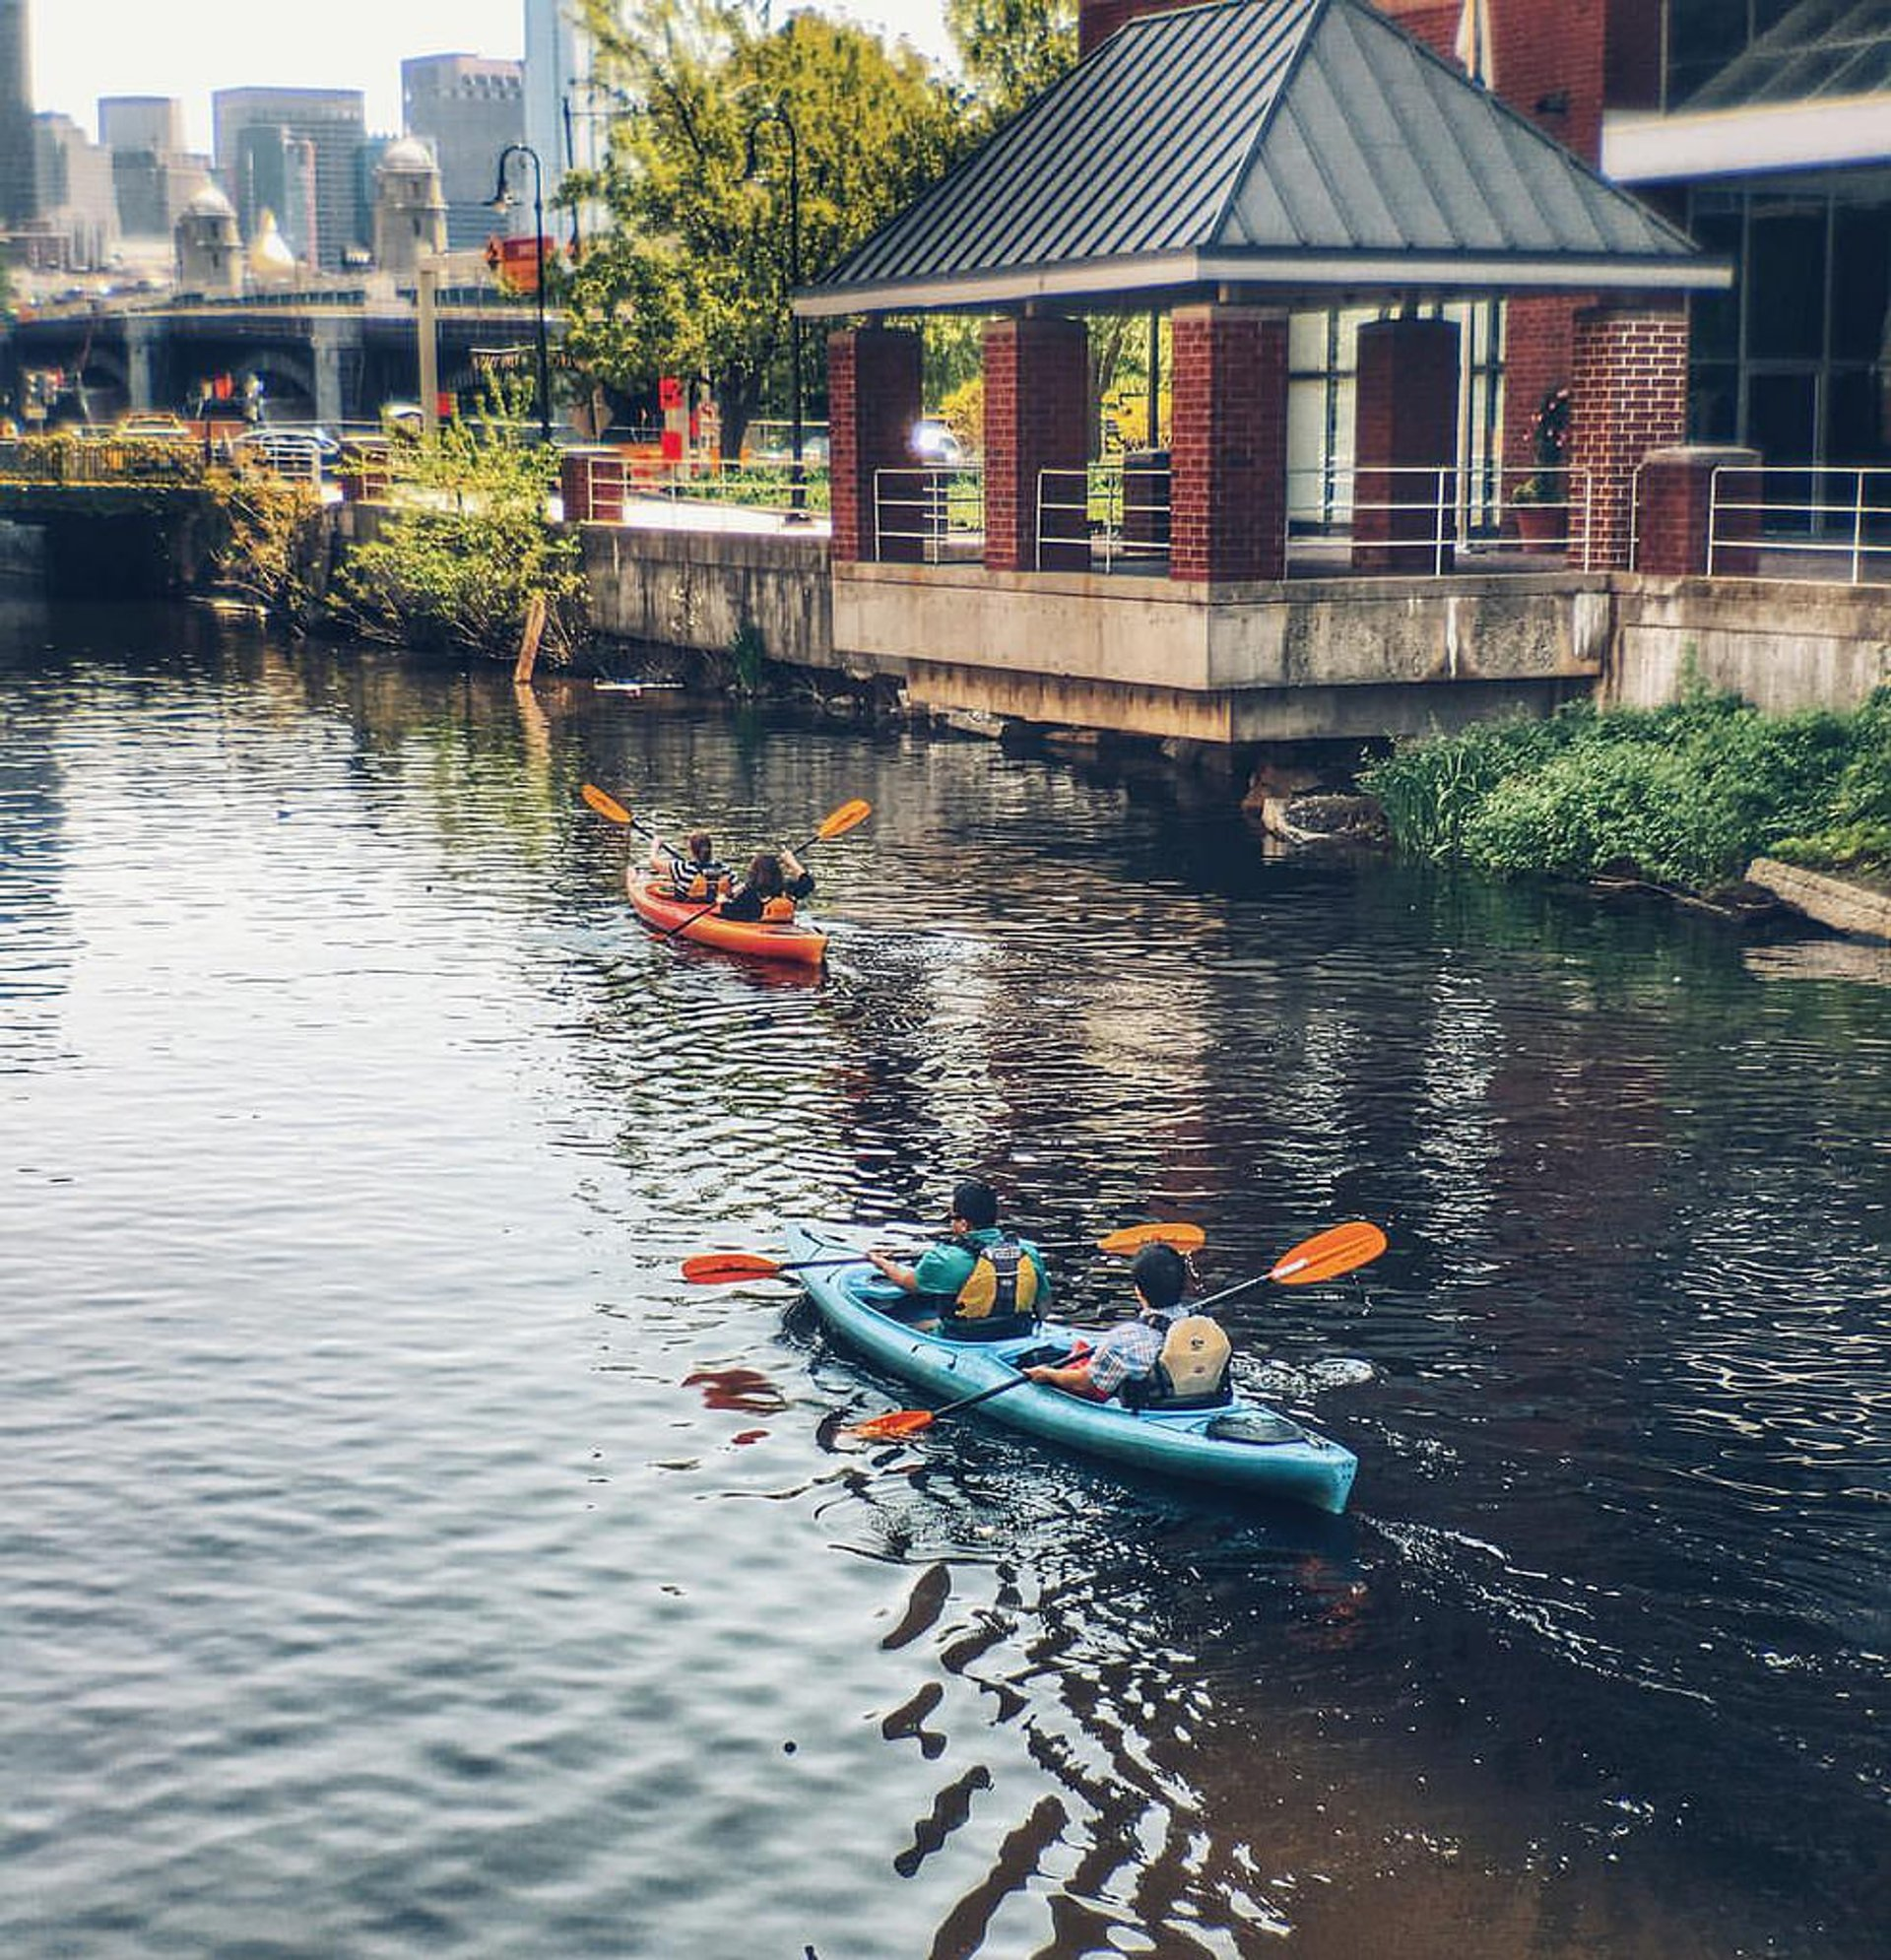 Charles River Kayaking in Boston 2020 - Best Time